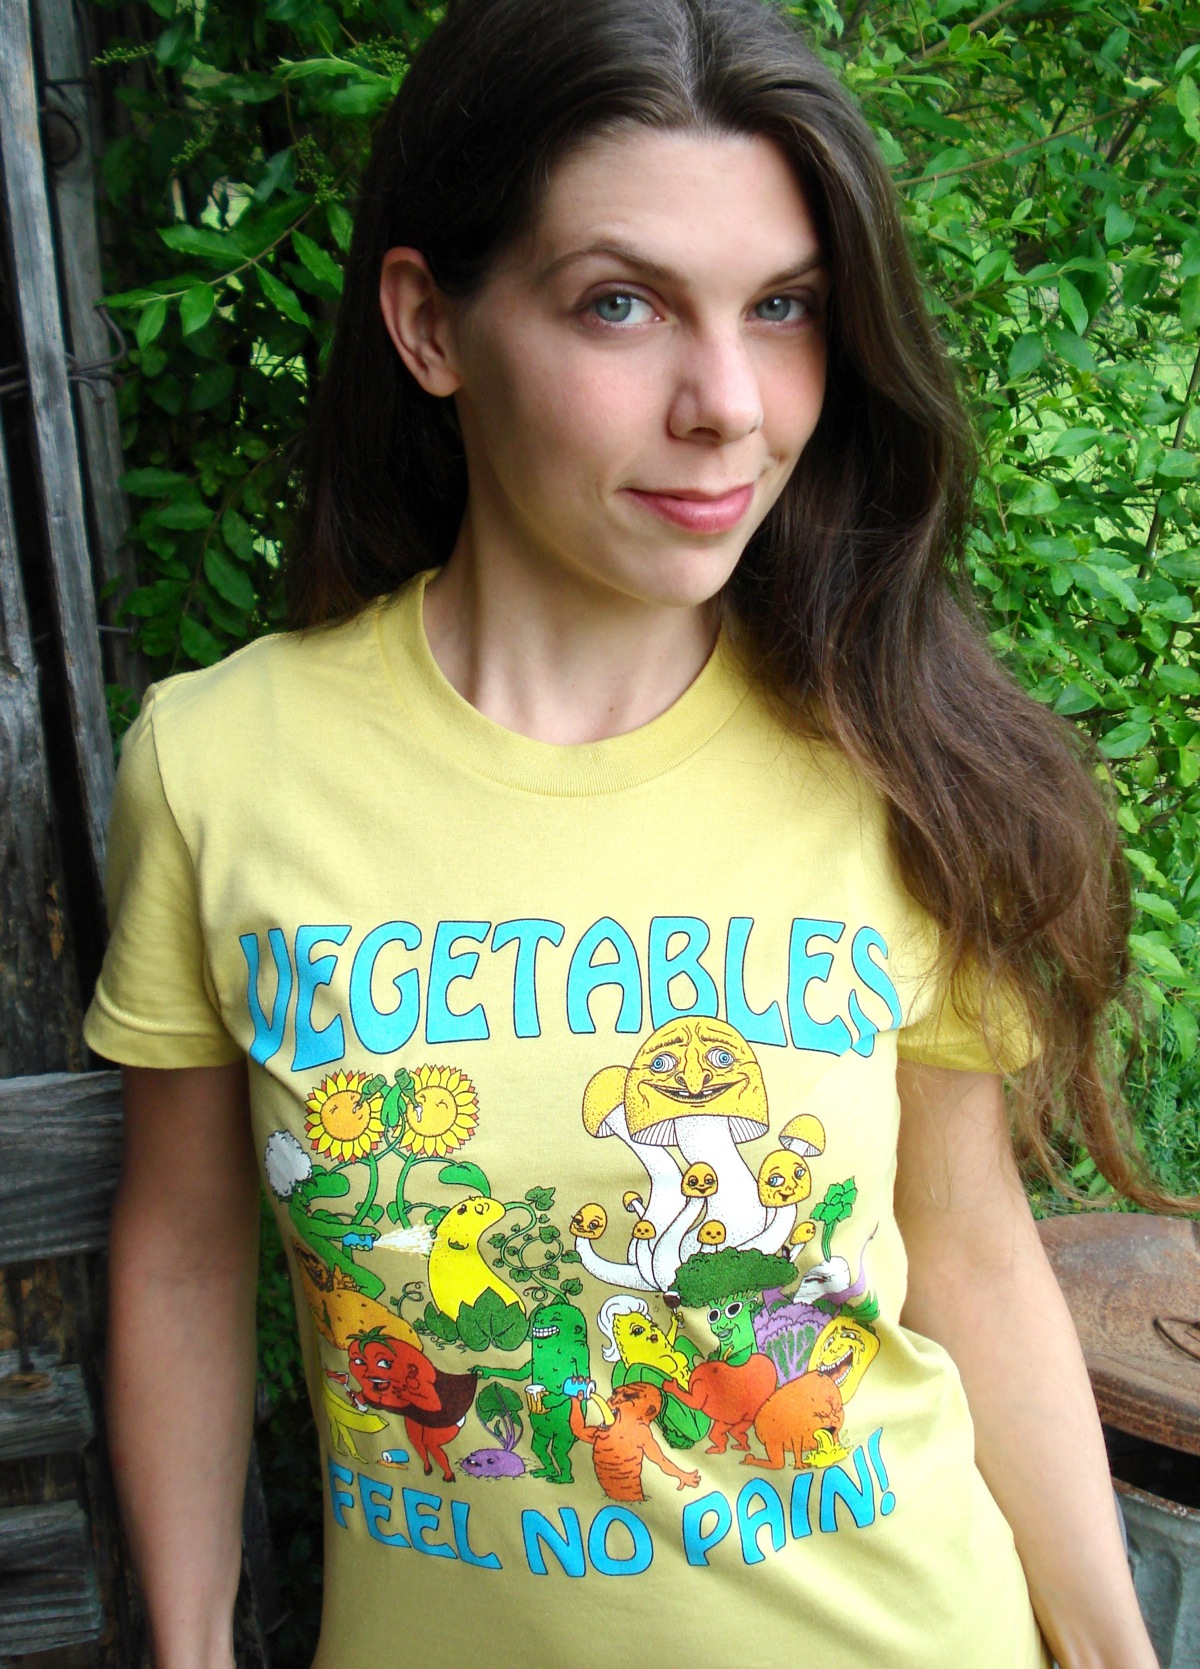 Roving House - Vegetables Feel No Pain by thecymbalwench